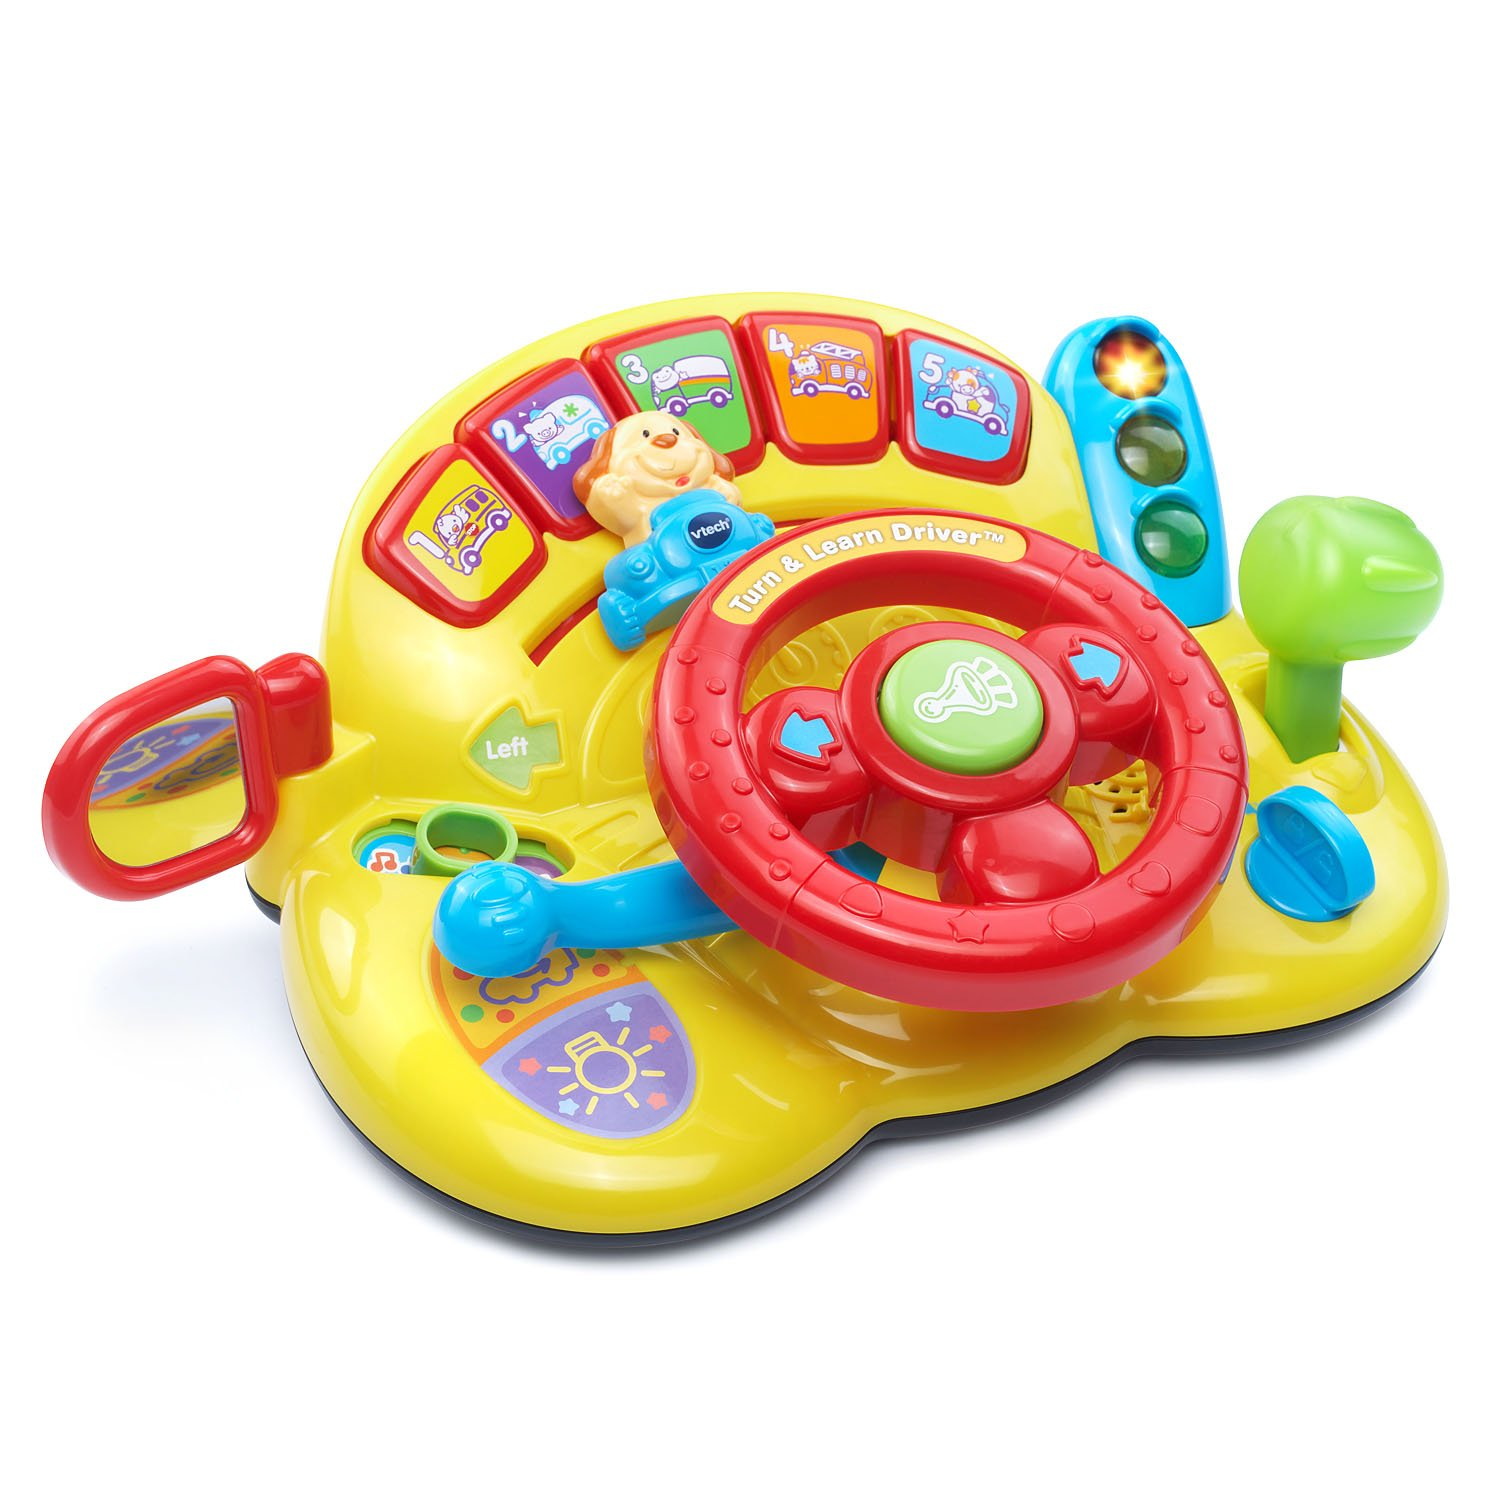 vtech turn and learn toy